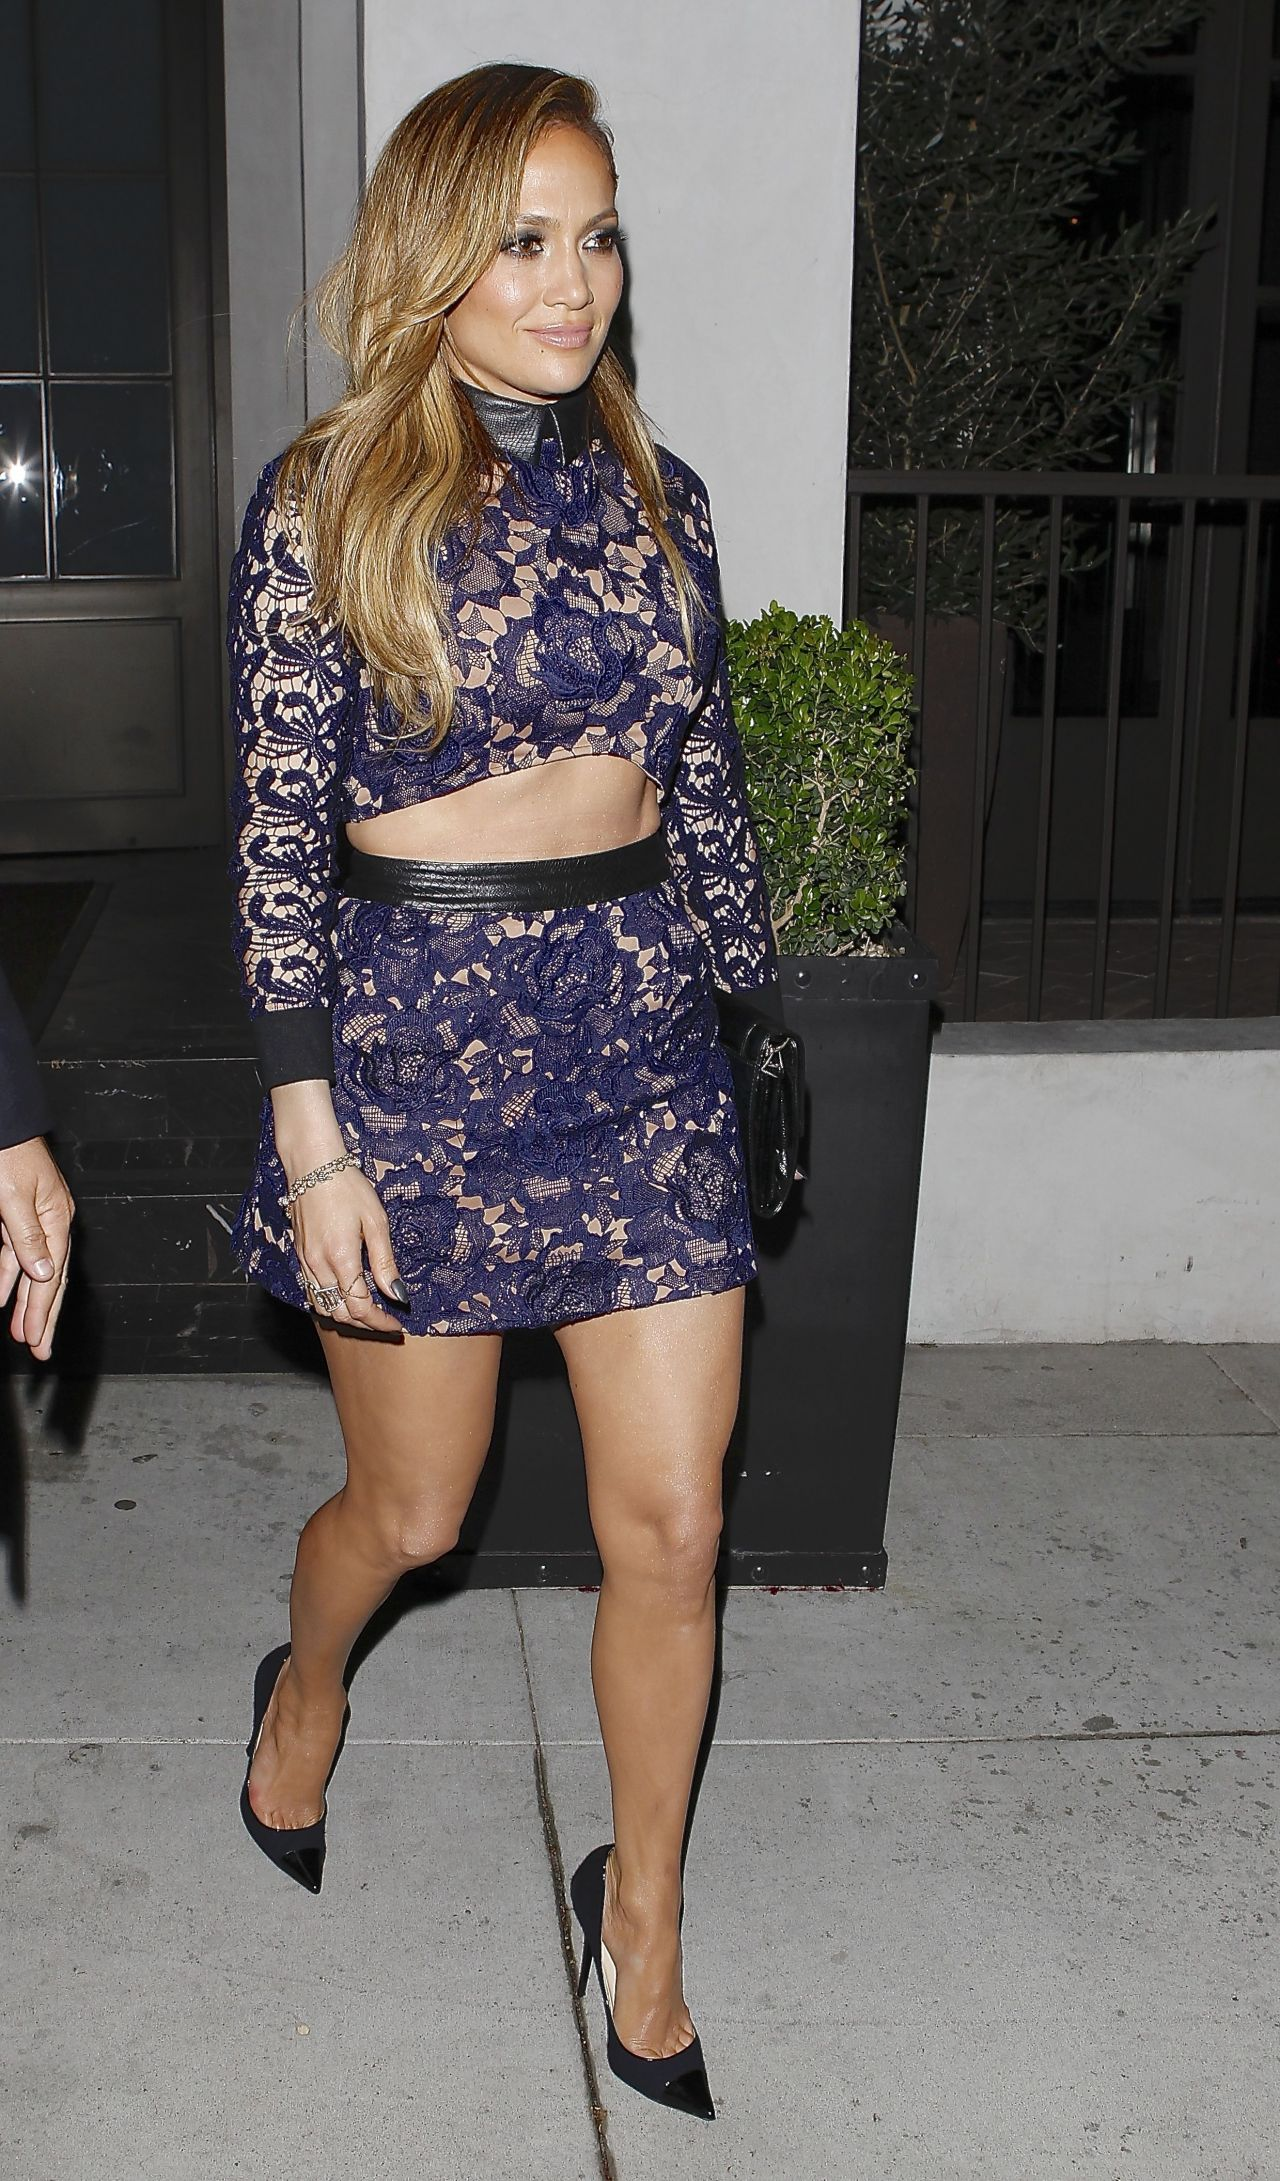 Jennifer Lopez Shows Off Legs - Spago Restaurant in Beverly Hills